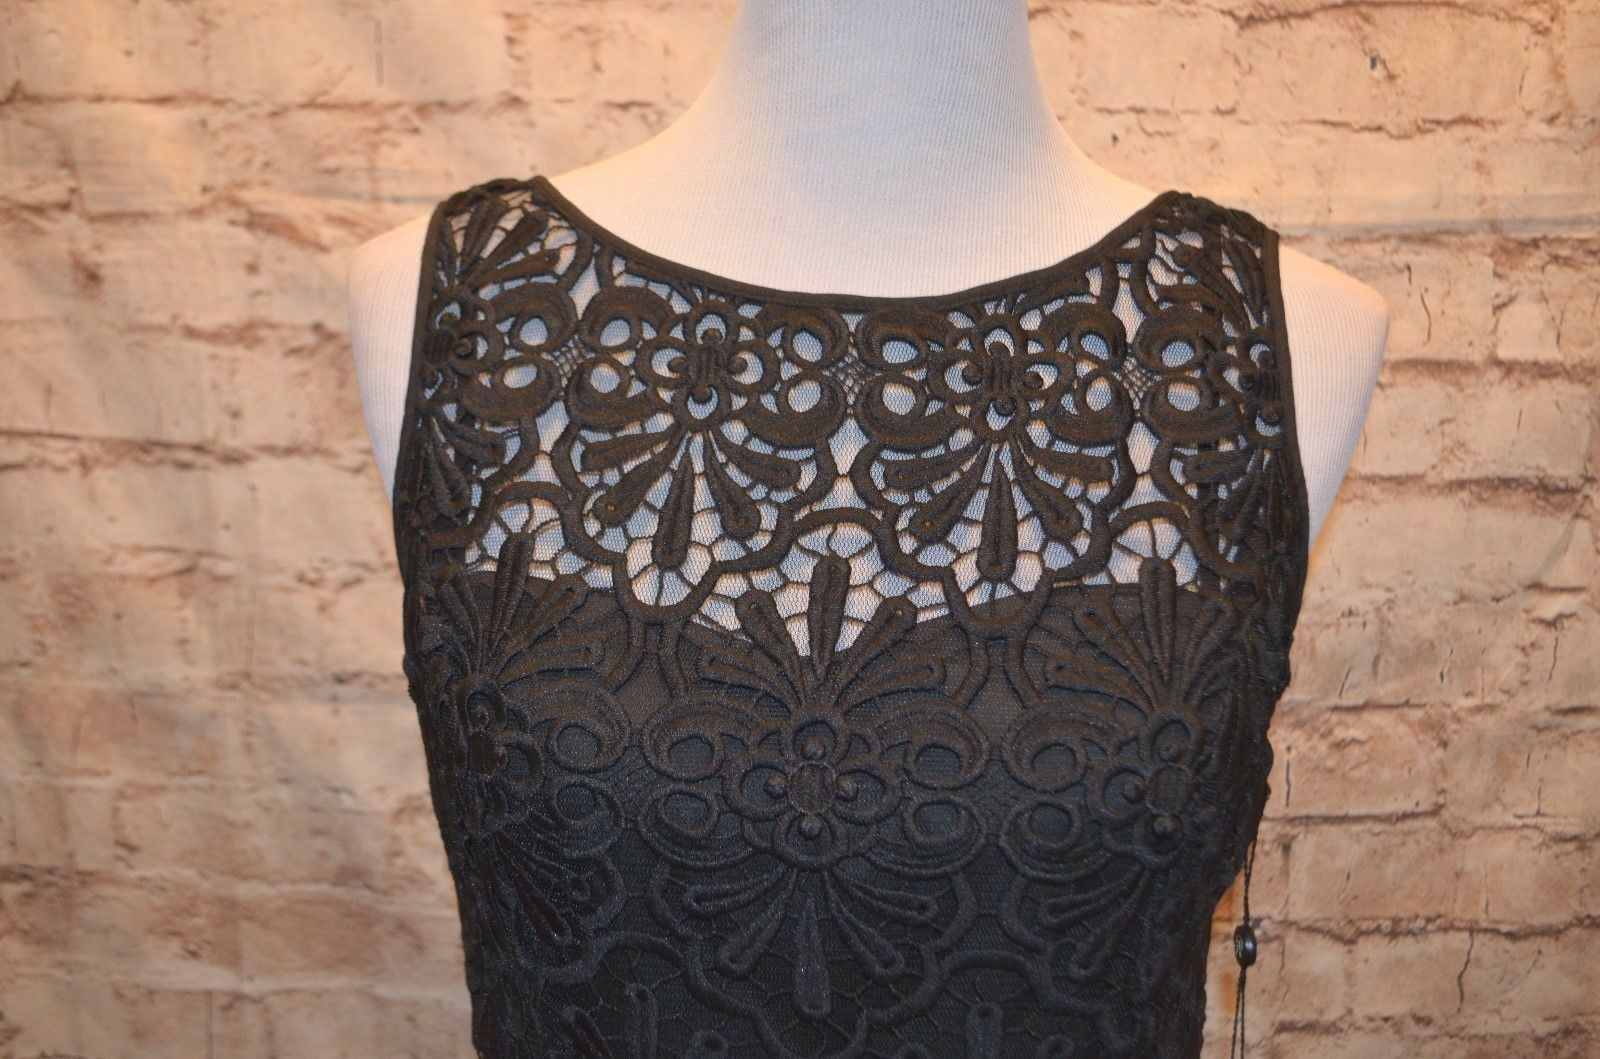 2c27022a7d7 ... Modcloth Famed to Fascinate dress NWT 6 6 6 Adrianna Papell Peplum bl  crochet tulle 96b5ec ...